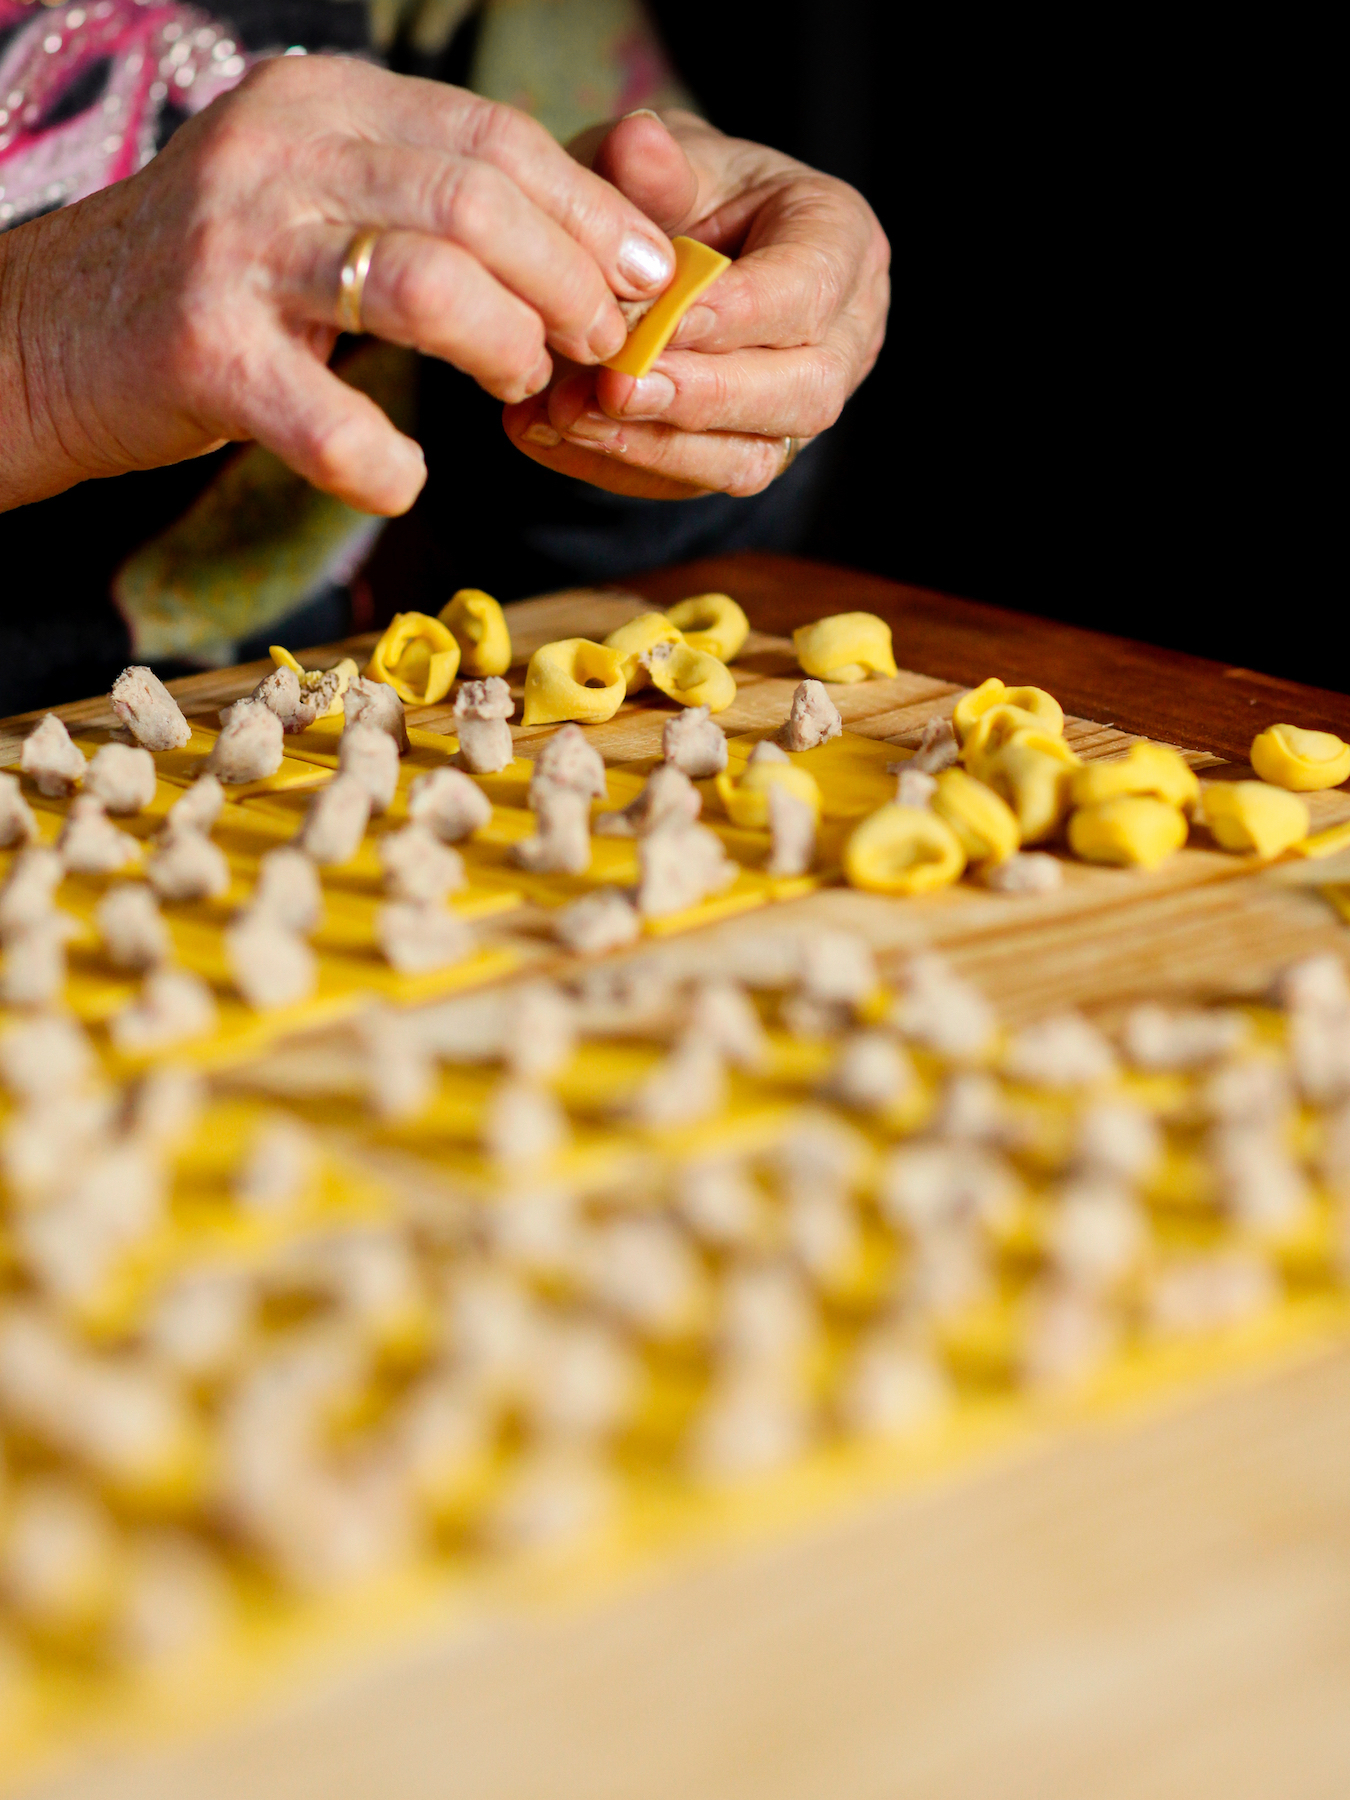 Preparation of the traditional homemade pasta of Modena City